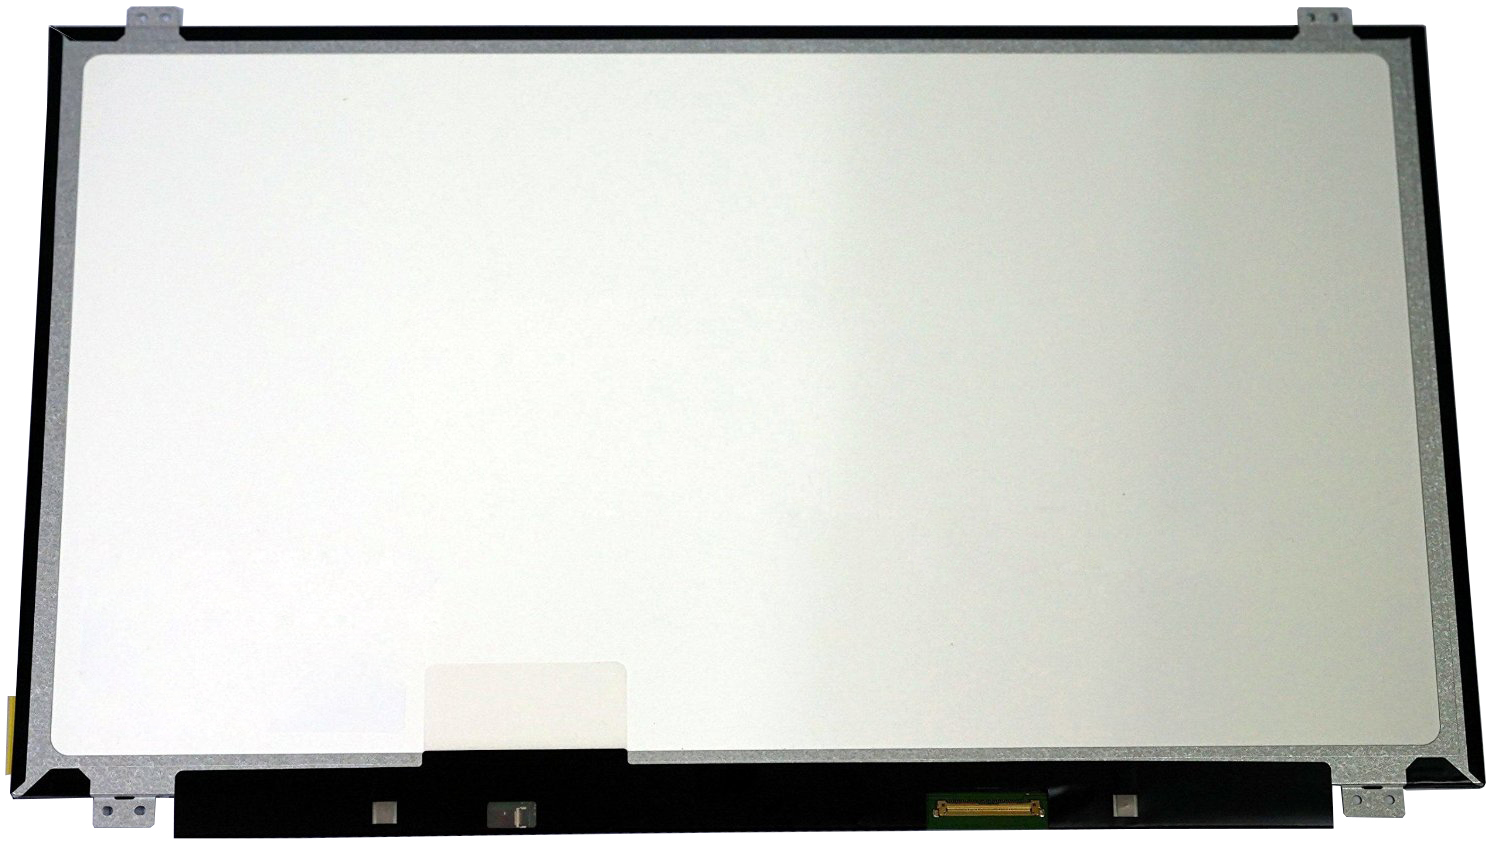 QuYing Laptop LCD Screen for Acer Aspire V5-573PG V5-561 V5-561G V3-572 V3-572G VN7-591G ES1-520 Series(15.6 1366x768 30pin) quying laptop lcd screen for acer extensa 5235 as5551 series 15 6 inch 1366x768 40pin tk